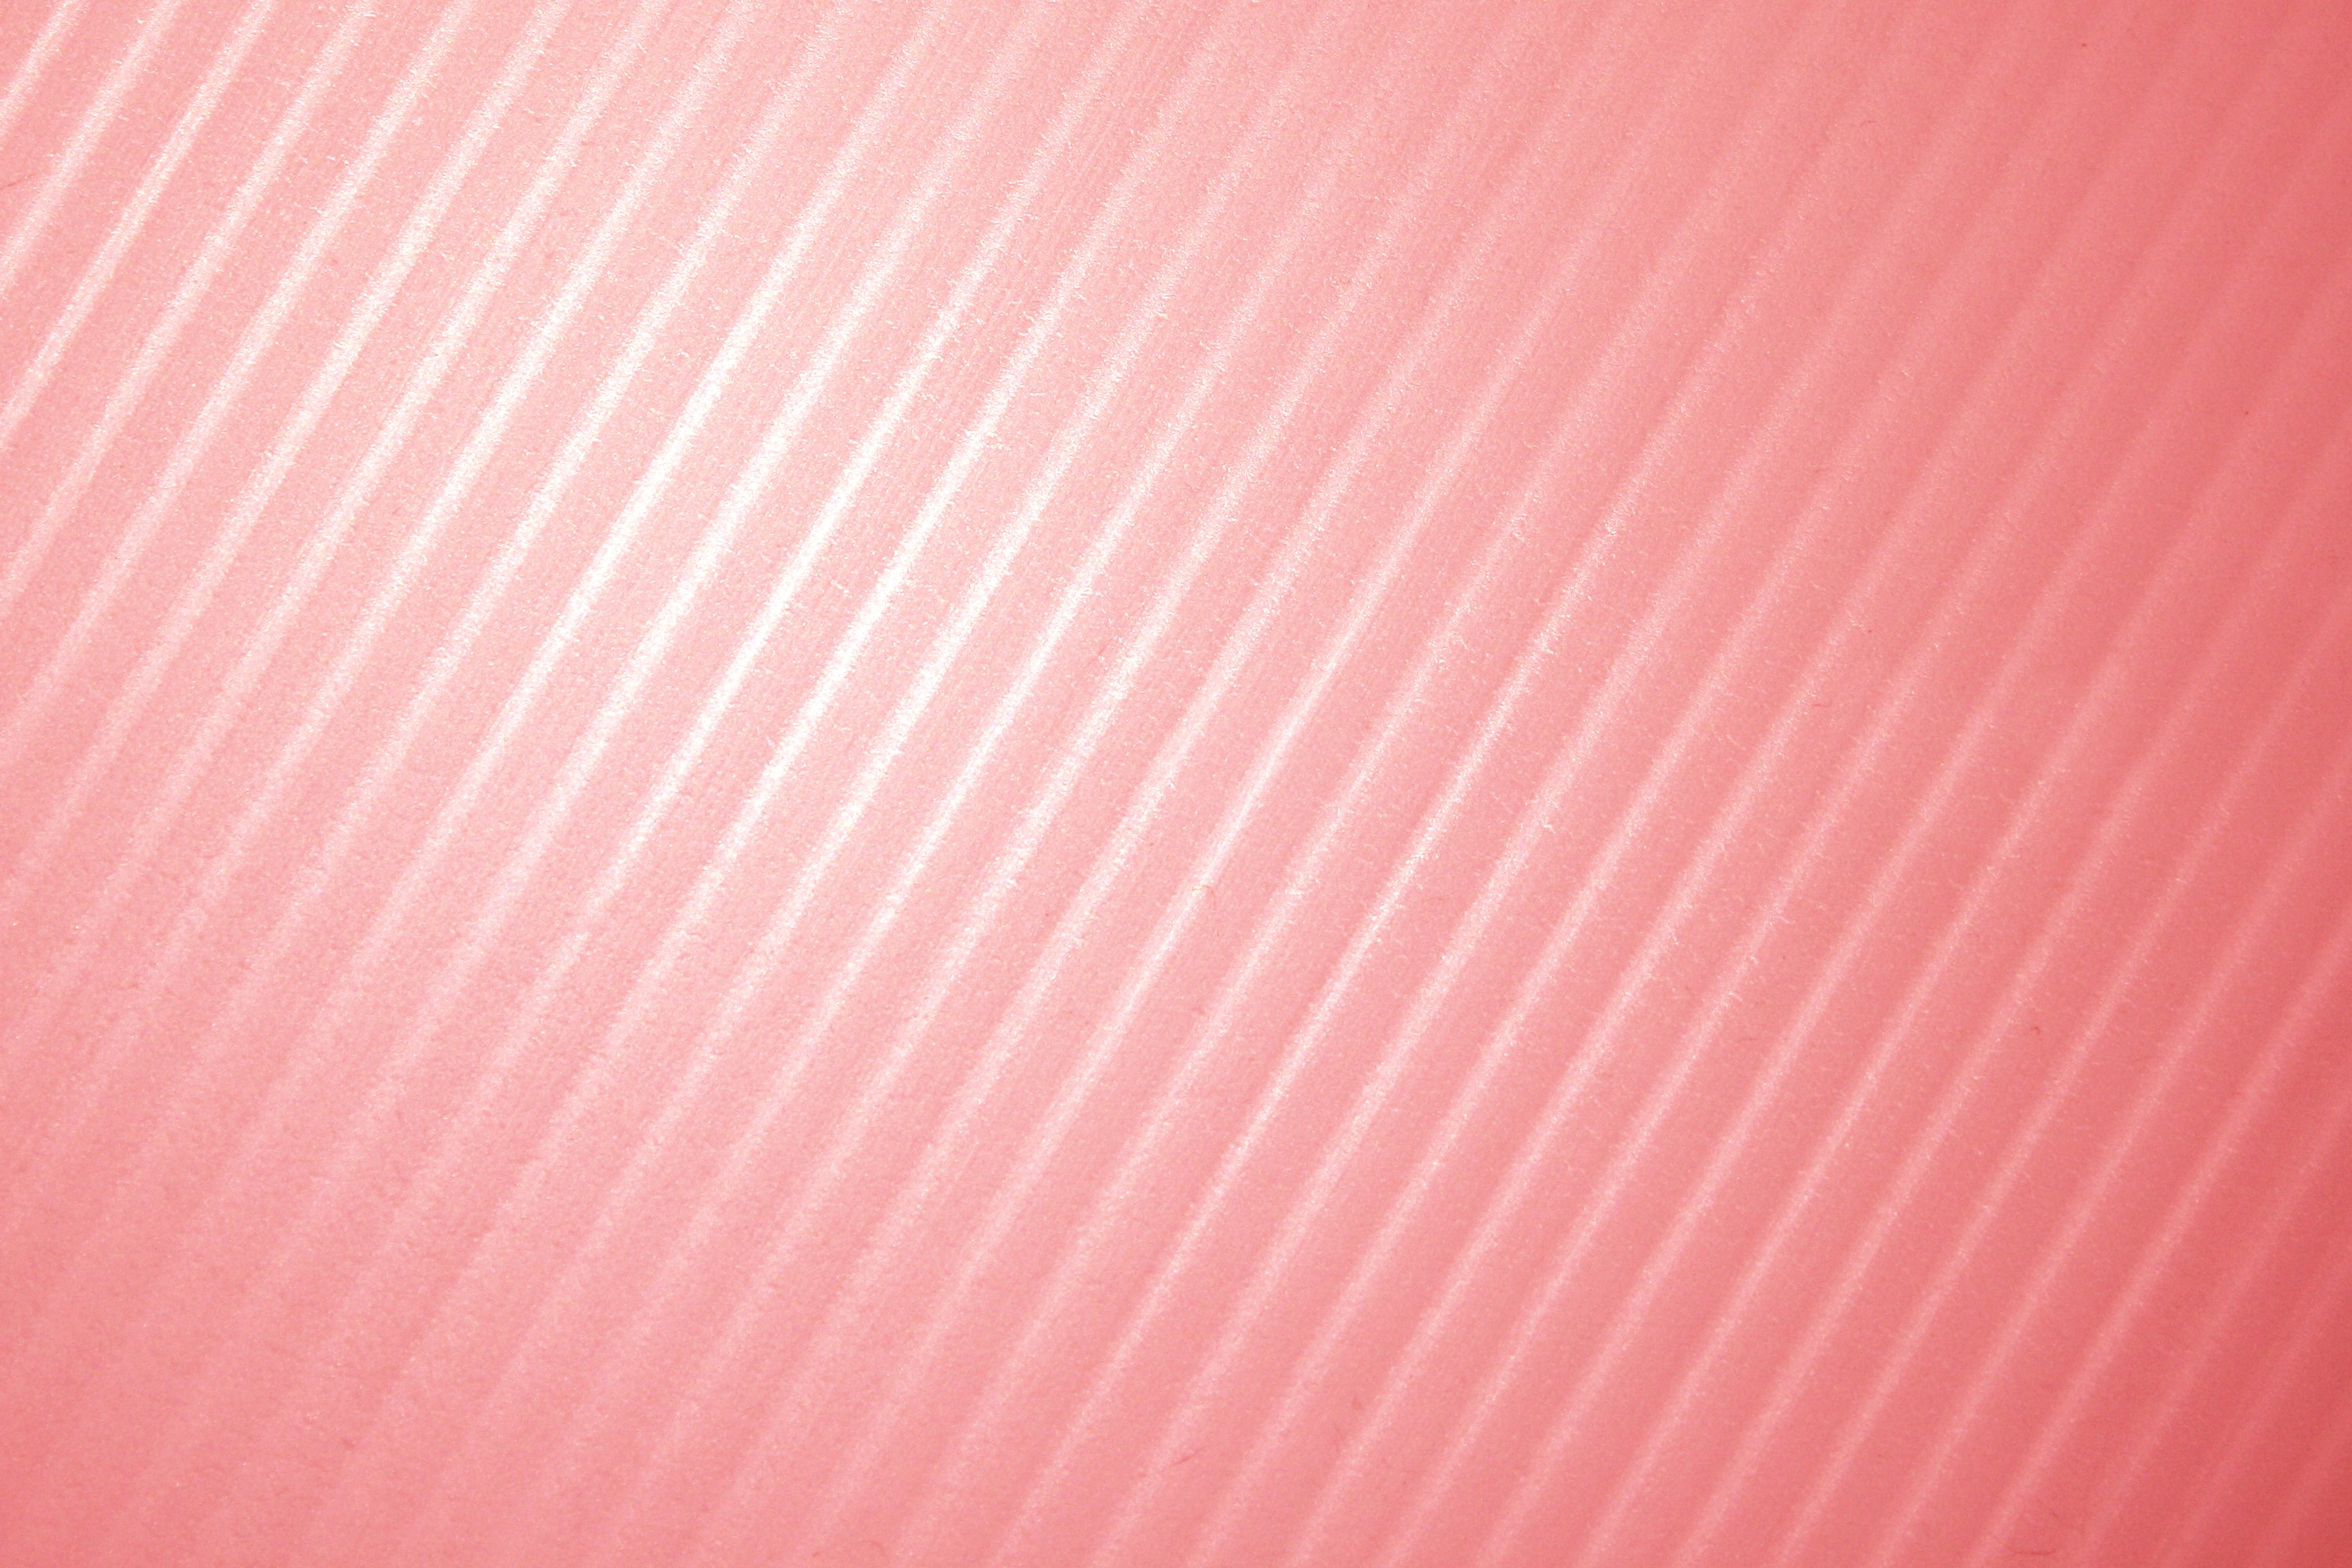 Salmon Red Diagonal Striped Plastic Texture Picture Photograph 3000x2000